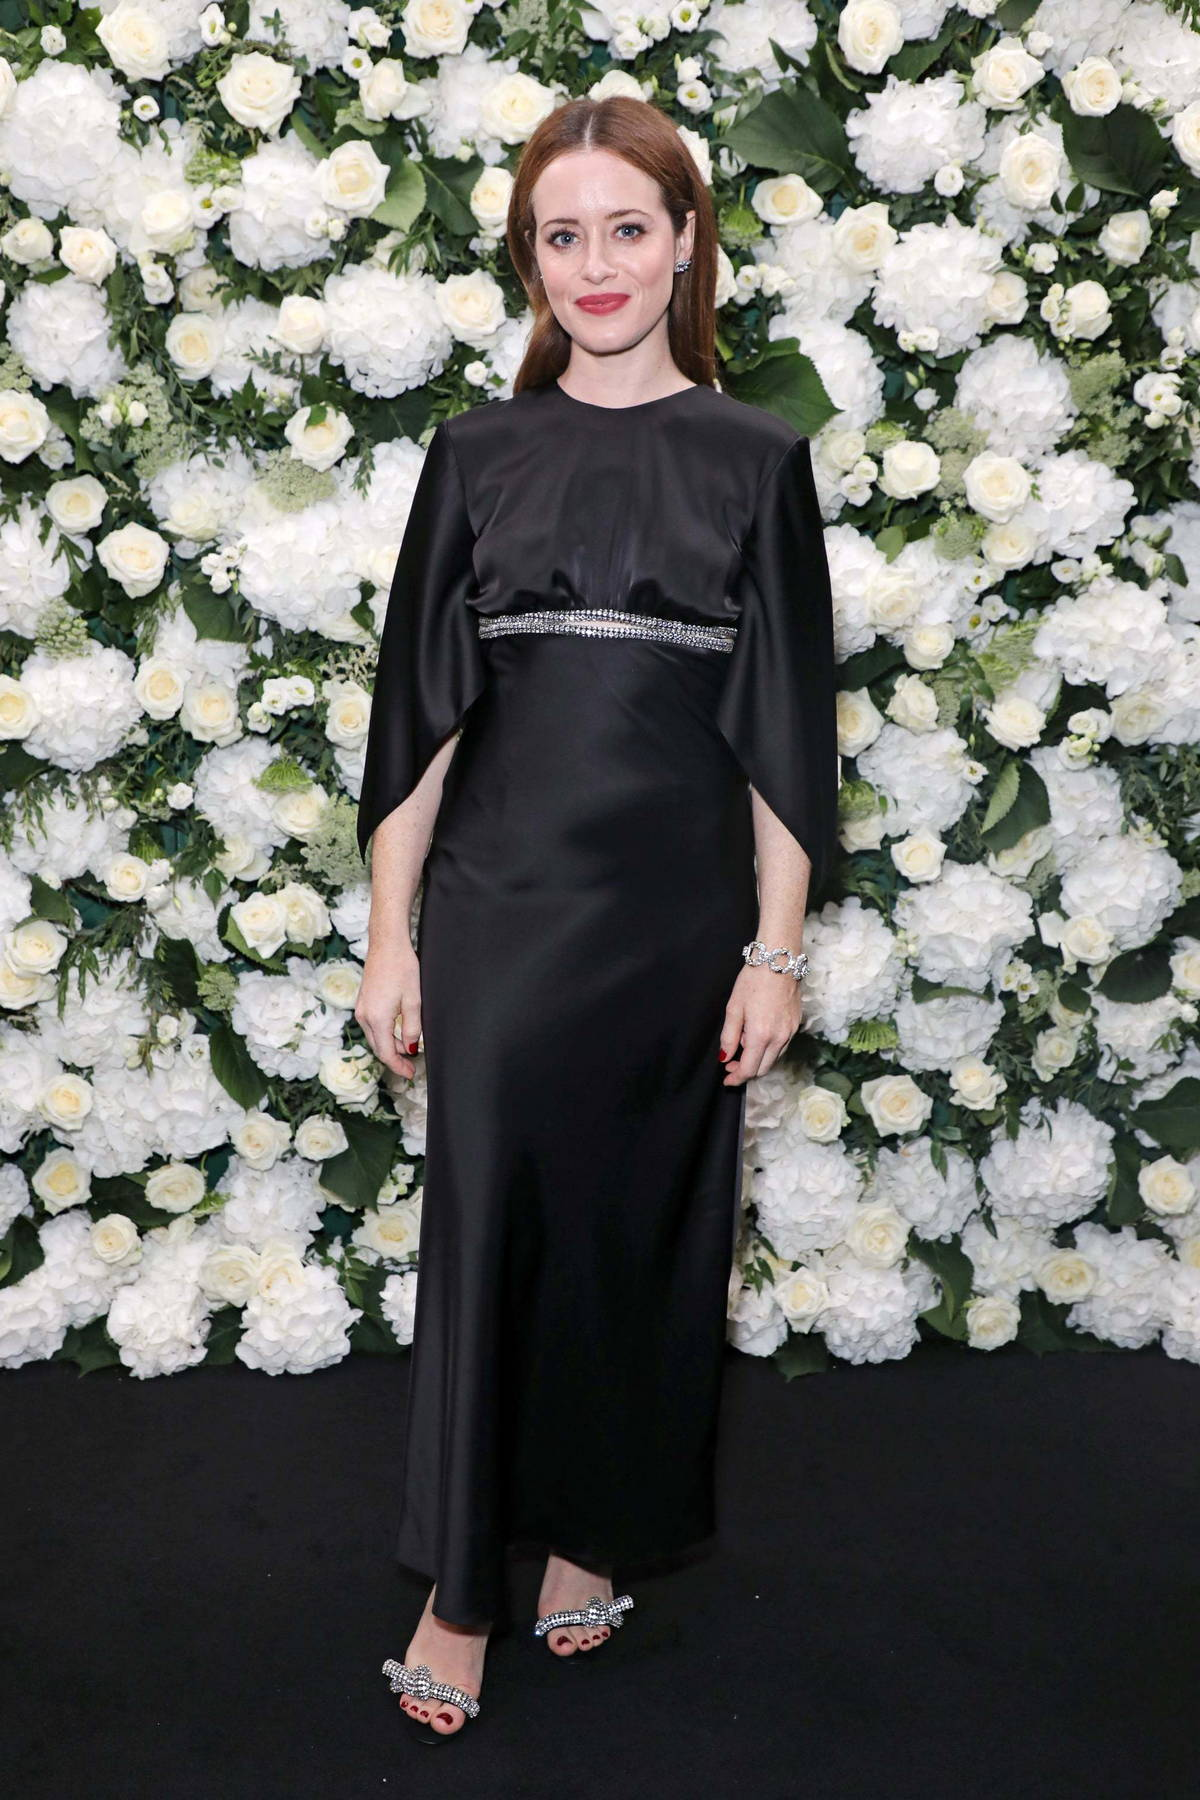 Claire Foy attends The British Vogue x Tiffany & Co Fashion And Film Dinner at The Londoner Hotel in London, UK